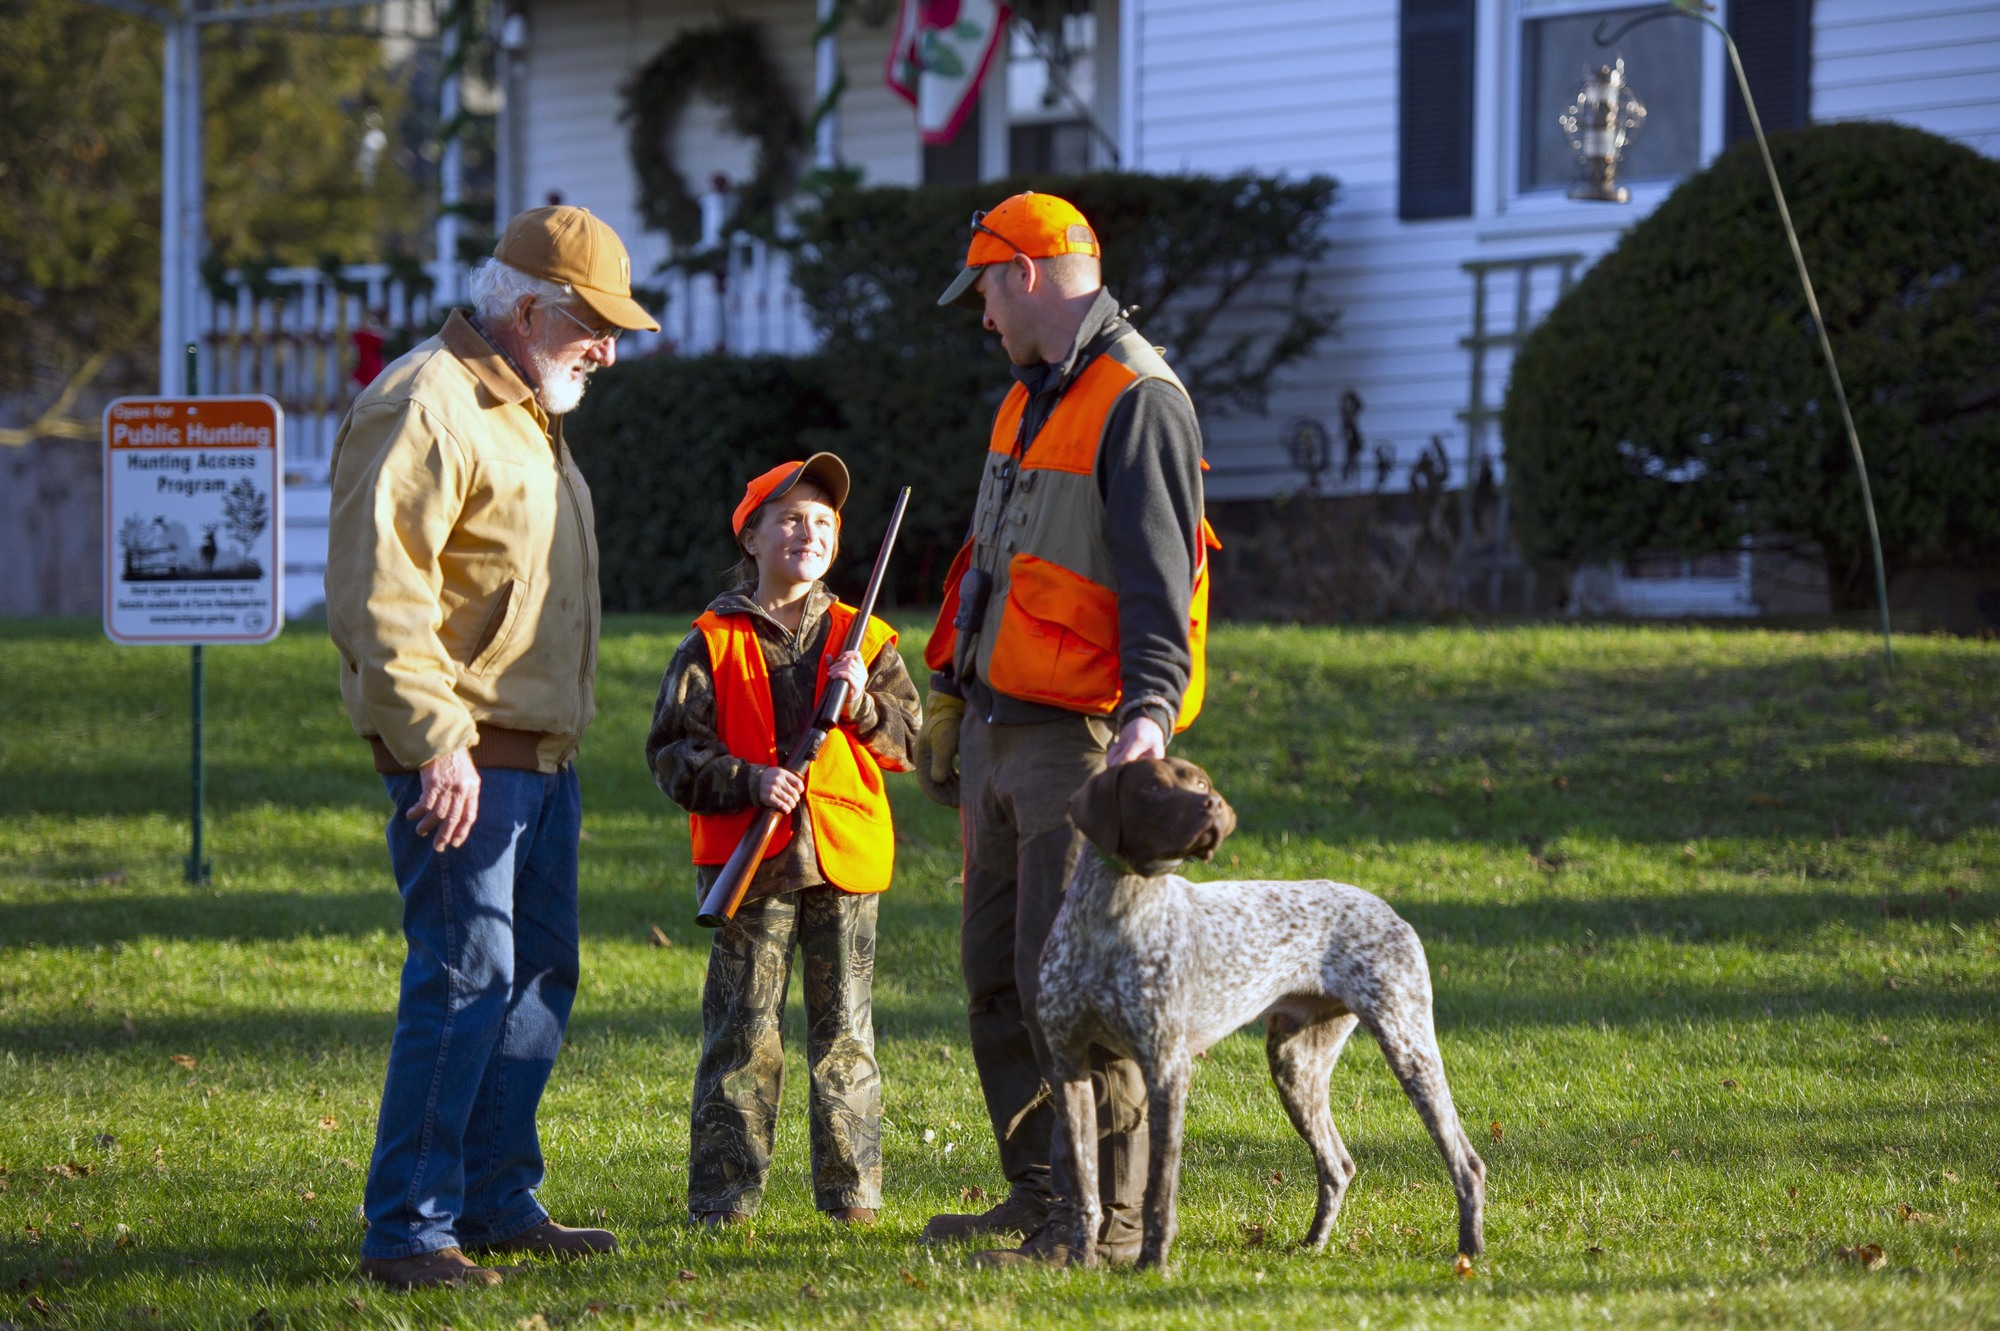 The Hunting Access Program provides incentives to landowners who open private lands to hunters.